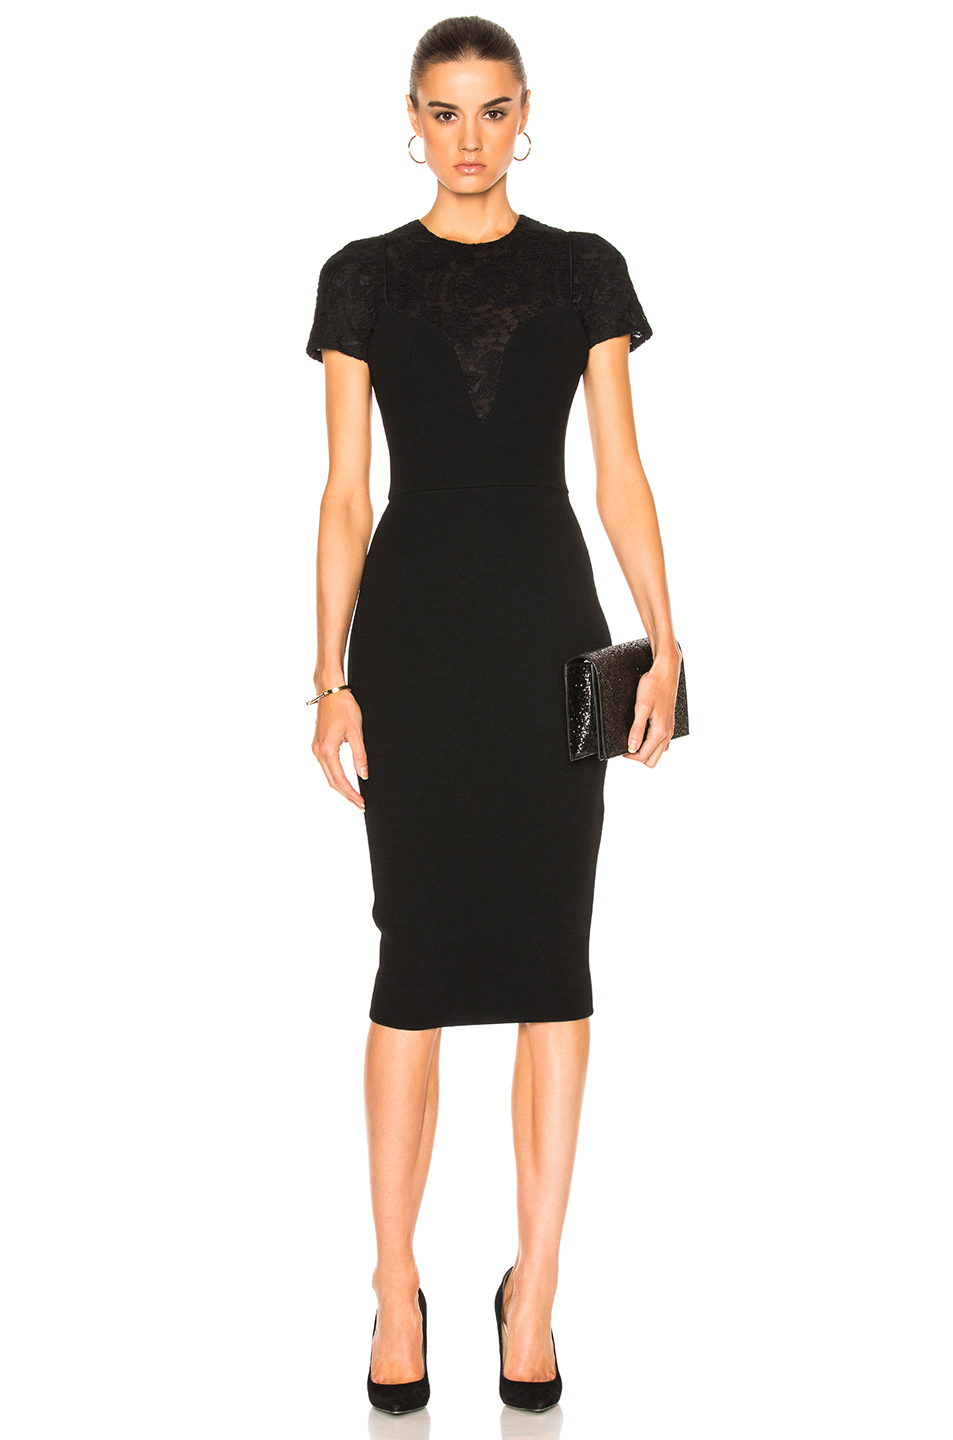 Victoria Beckham Matte Crepe & Lace Insert Short Sleeve Fitted Dress in Black